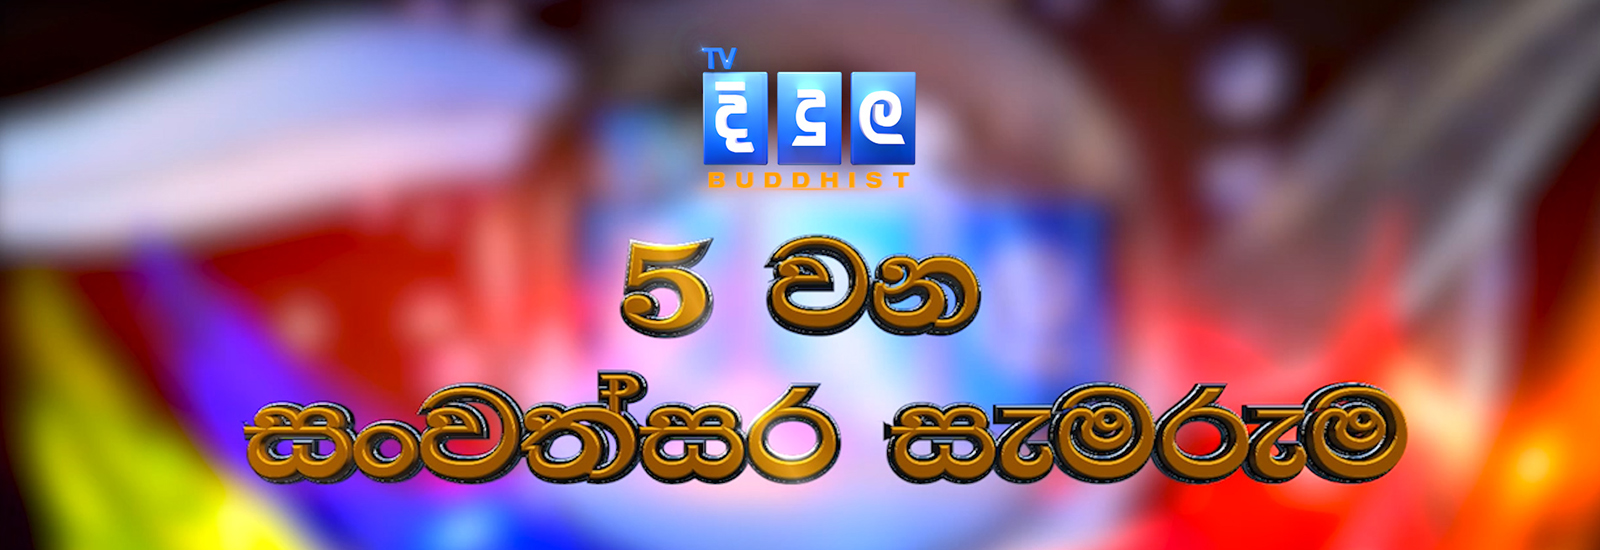 tv didula 5th annivesary